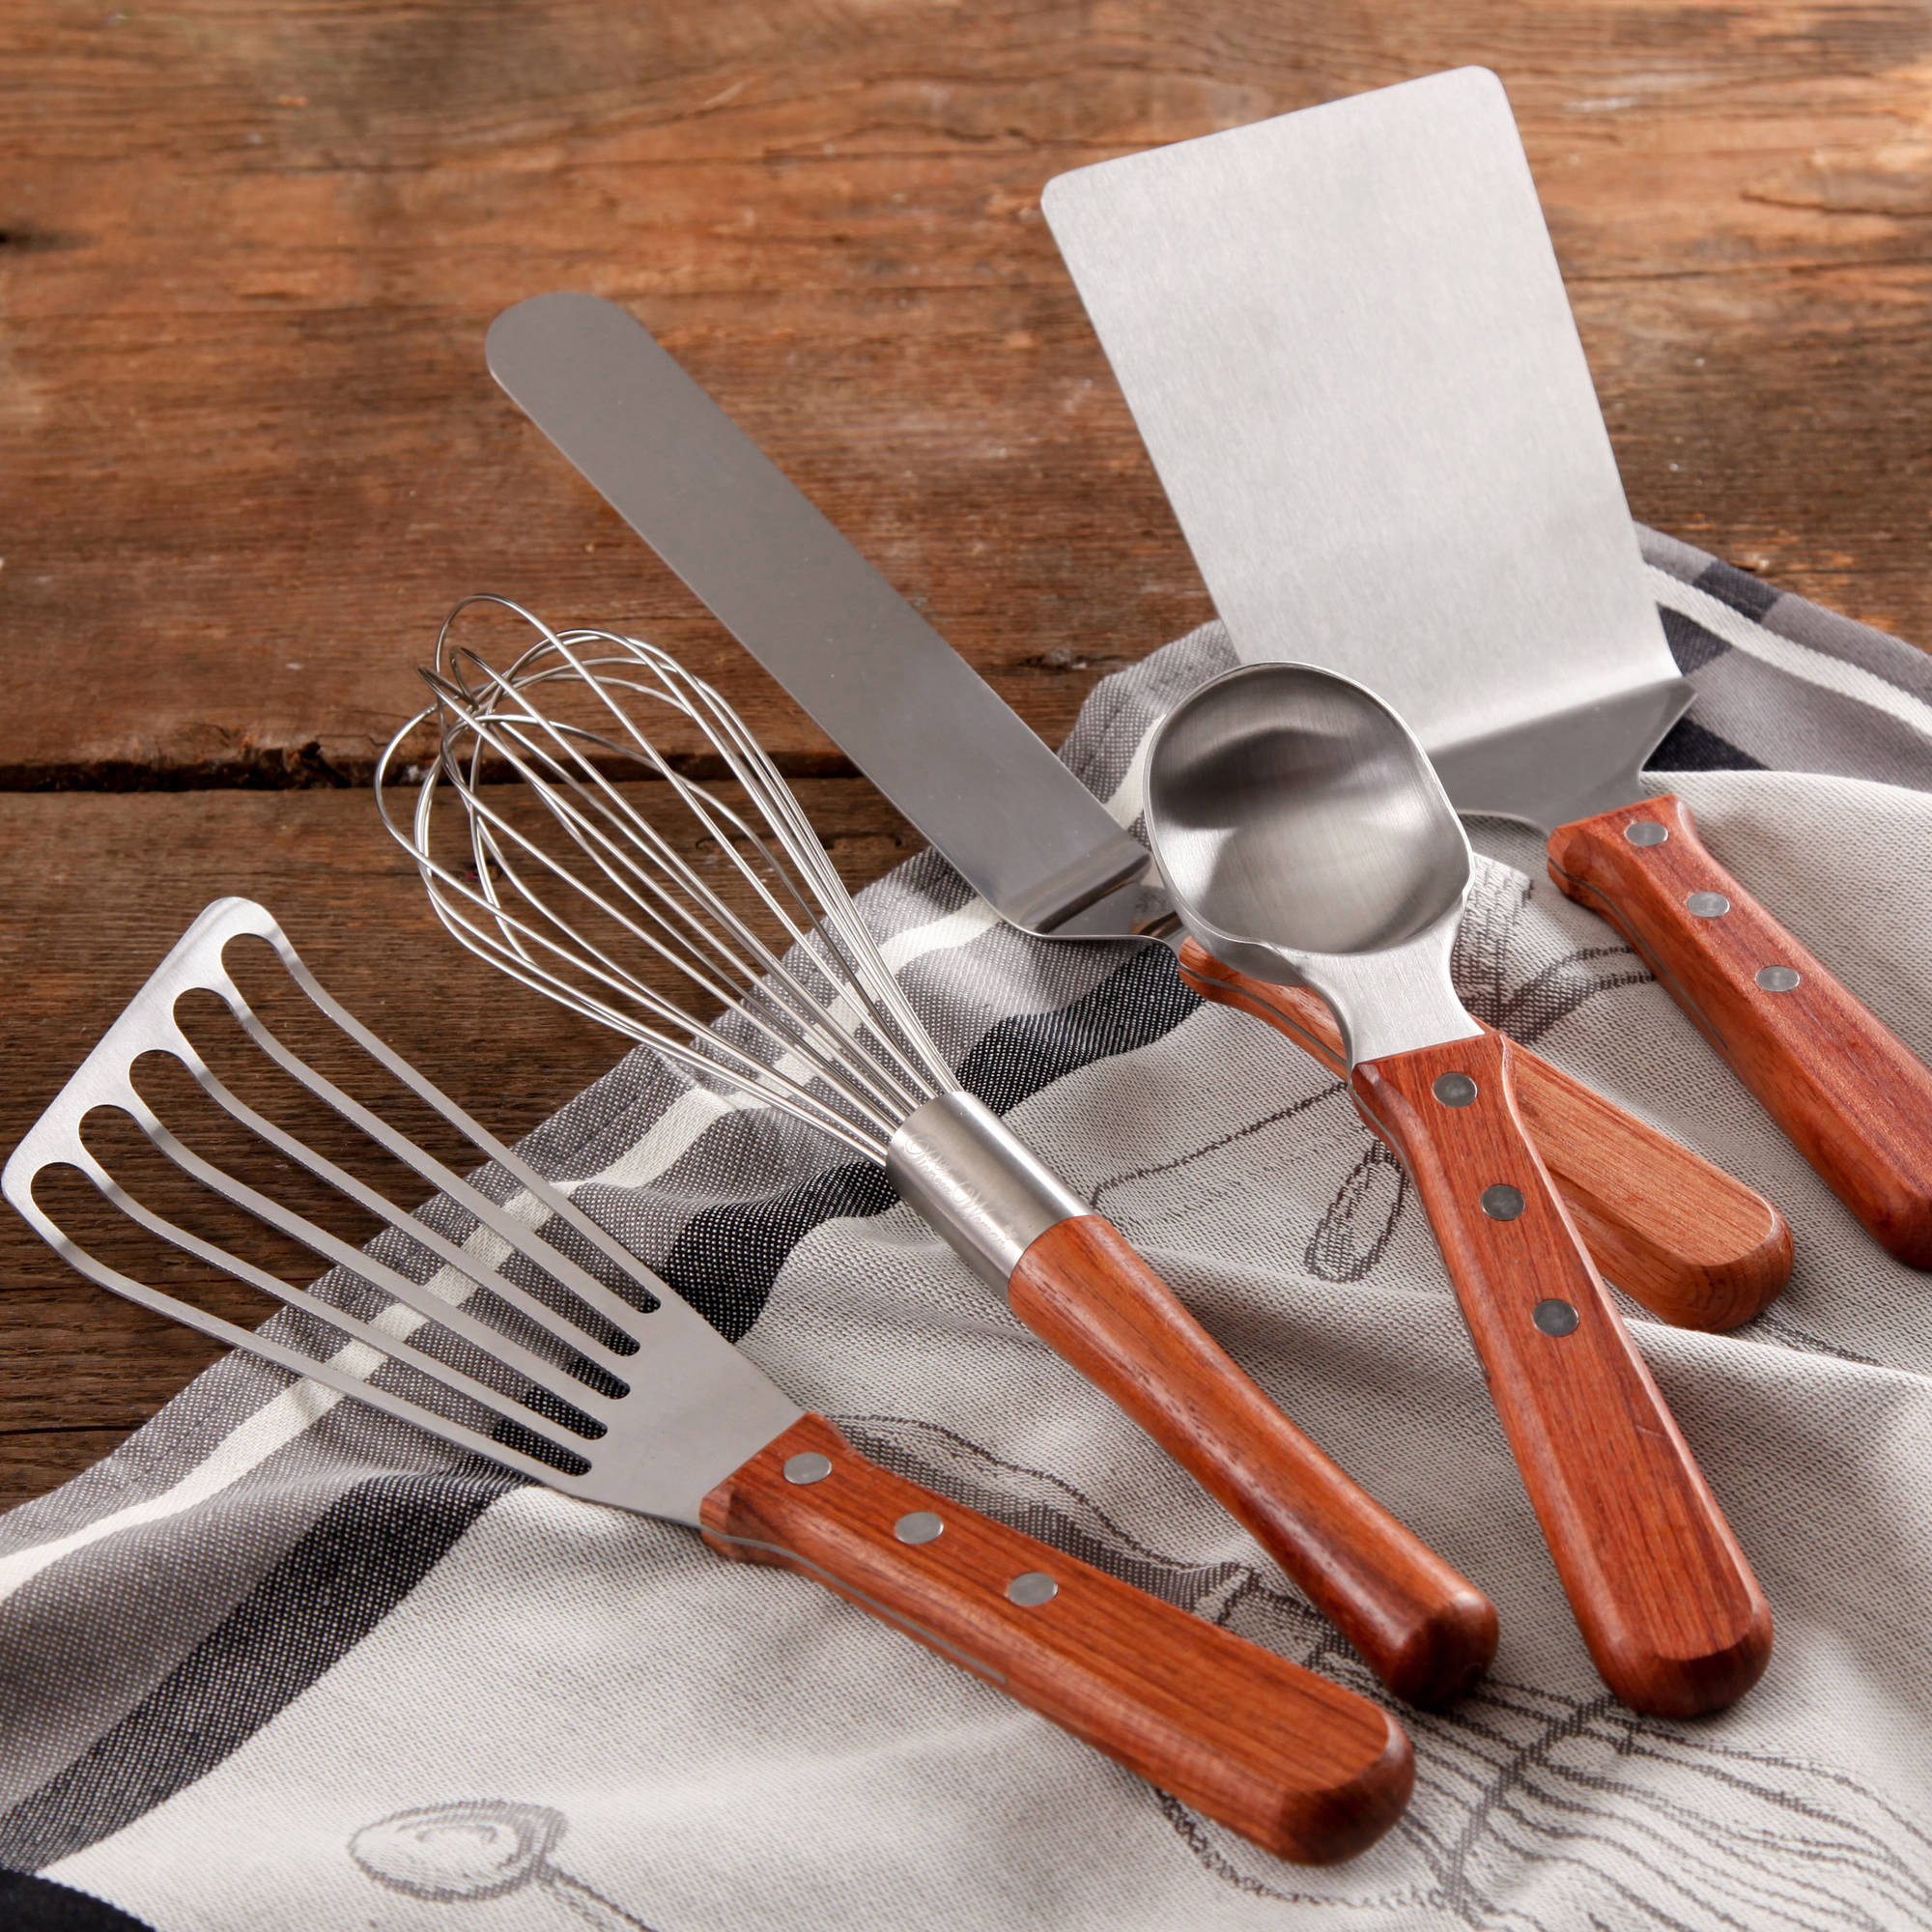 The Pioneer Woman Cowboy Rustic Baker's Essentials 5-Piece Kitchen Tool Set with Short Wood Rosewood Handle